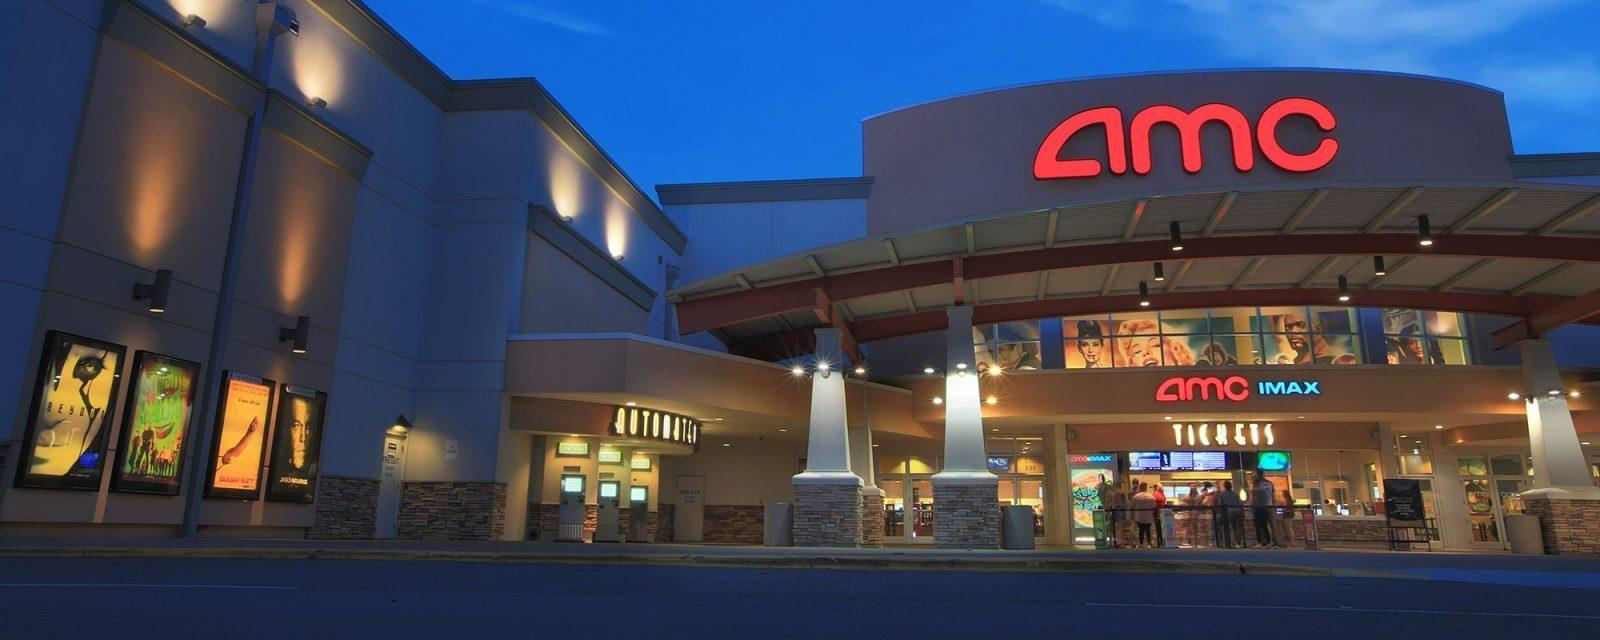 AMC Theaters is Selling Off Stocks to Survive The Next Few Months